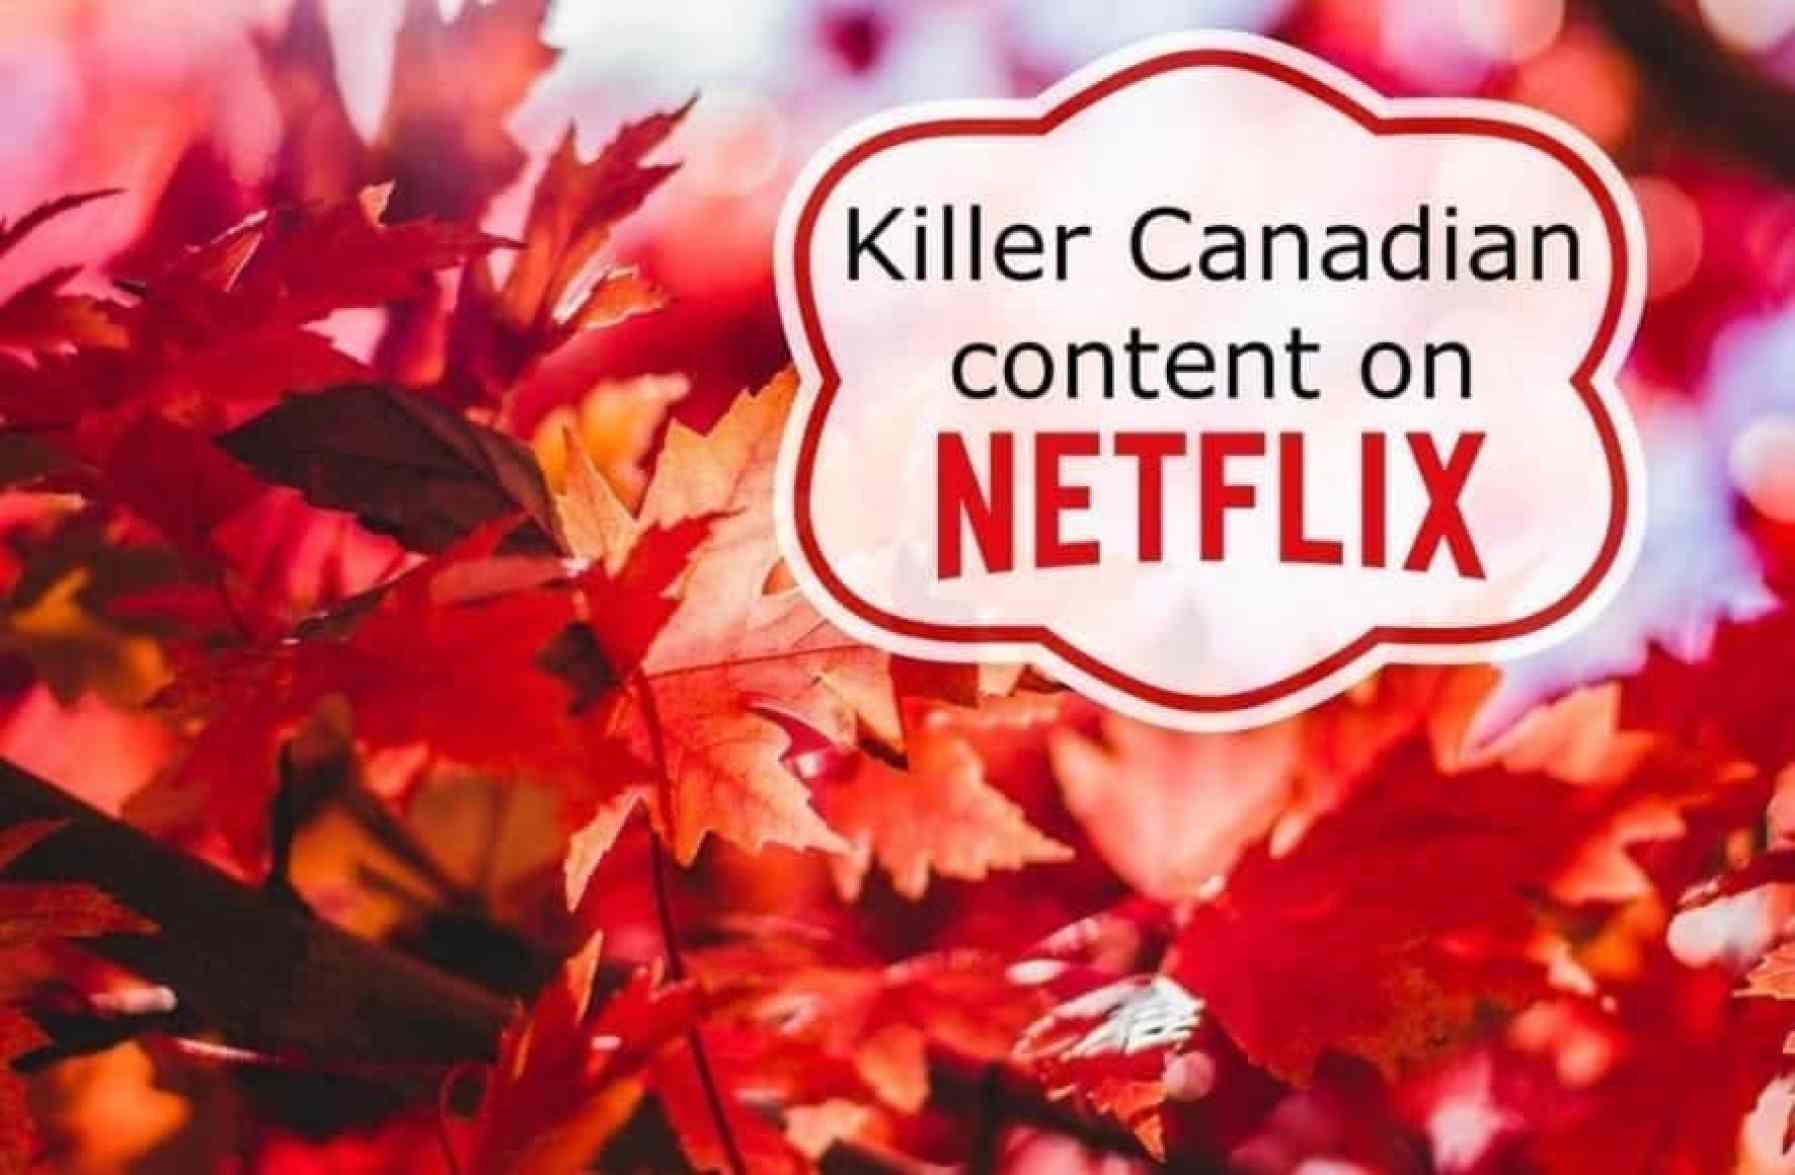 Canadian content on Netflix button